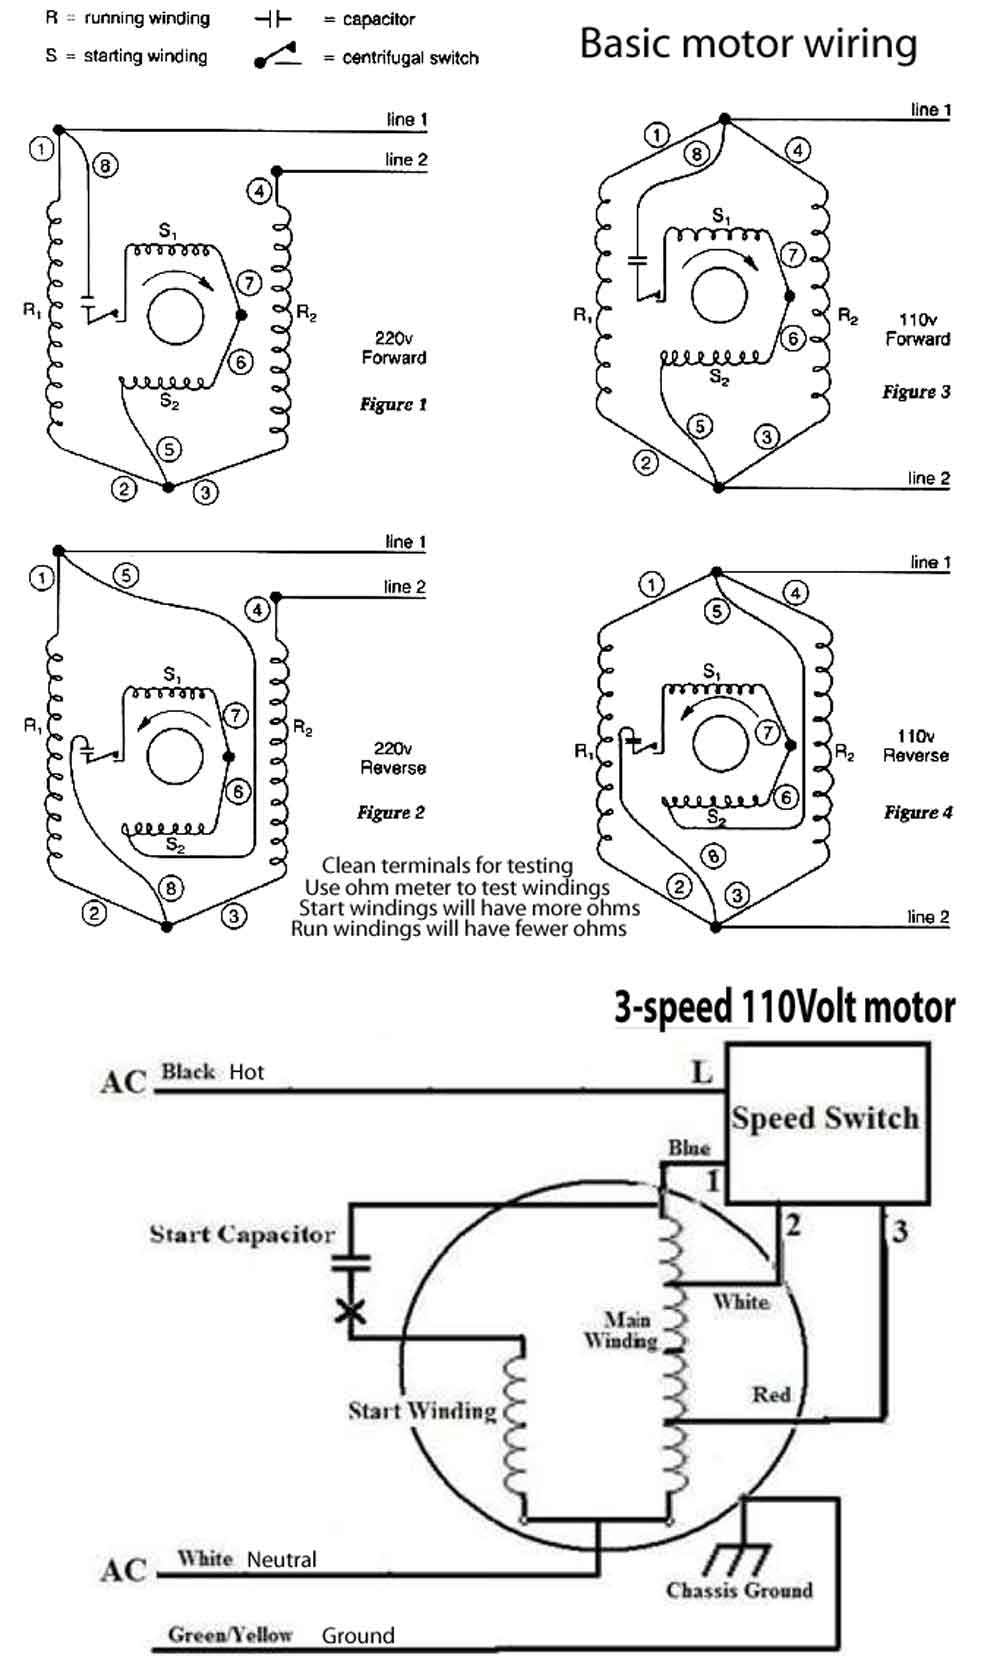 medium resolution of basic motor wiring illustration jpg